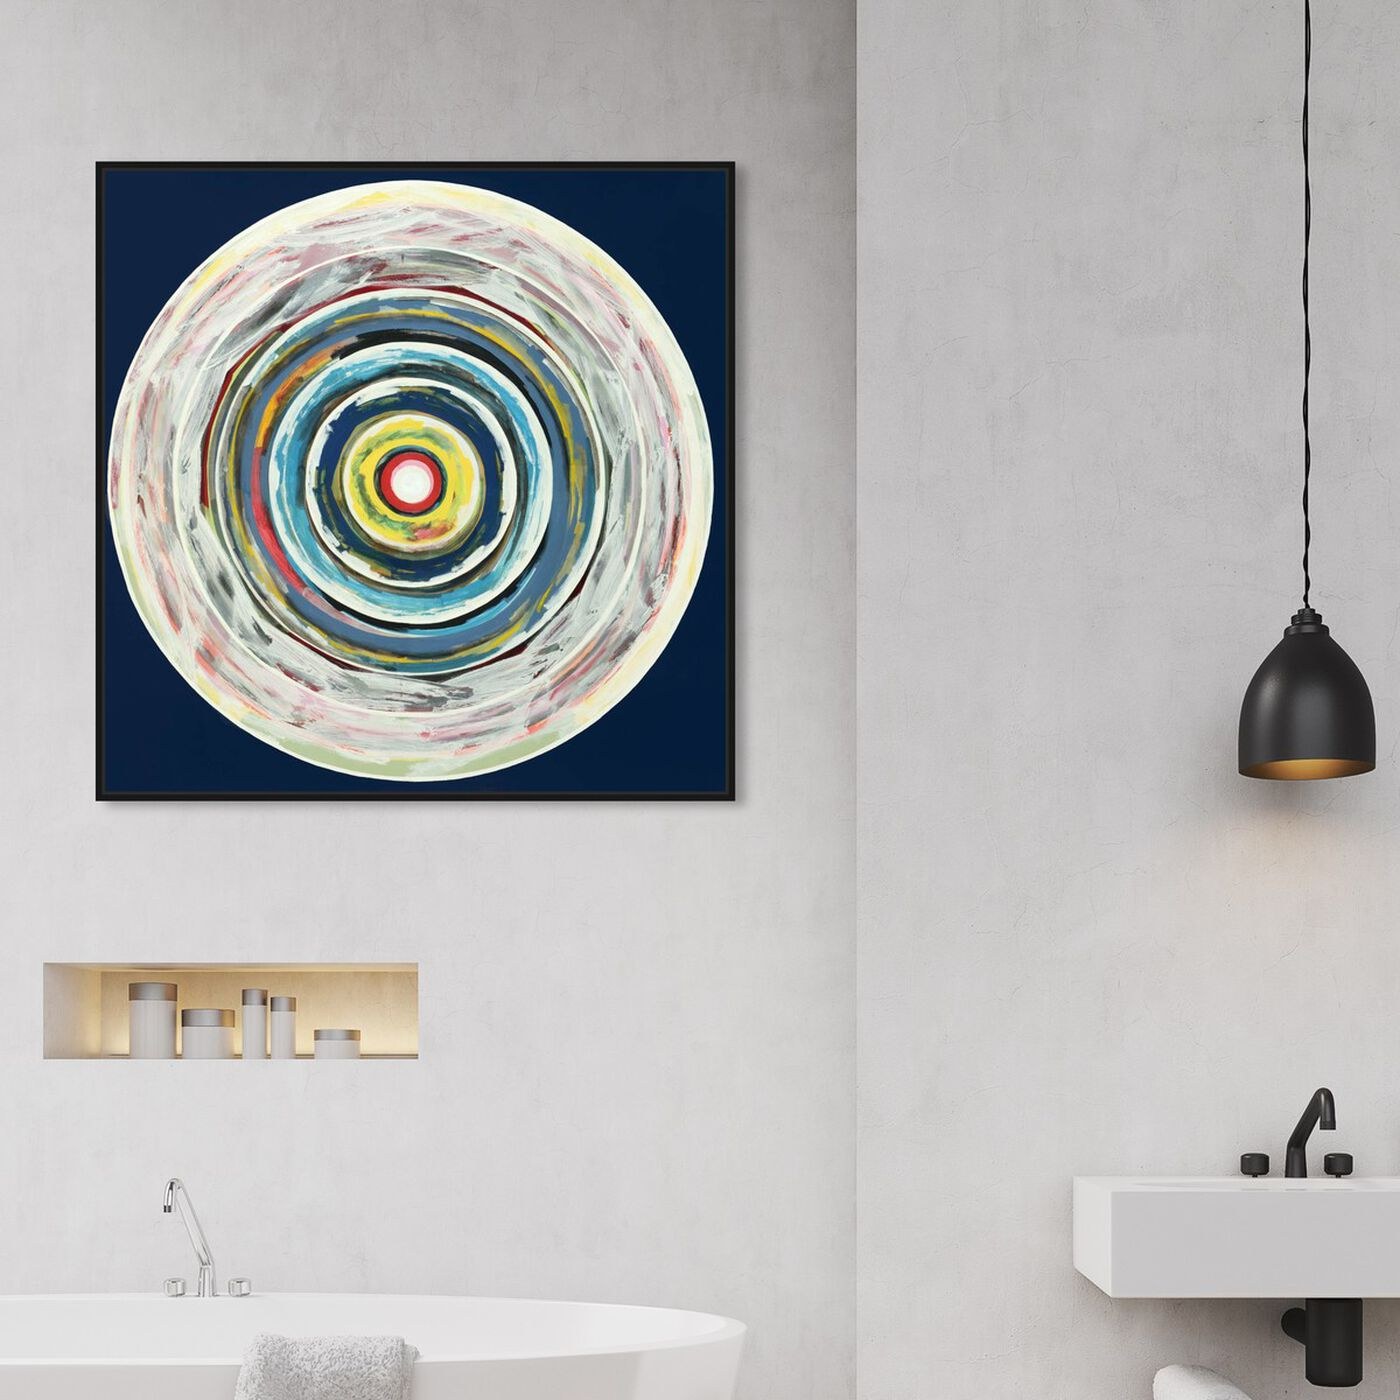 Hanging view of Sai - Pictis Spiralis 1NM1138 featuring abstract and paint art.